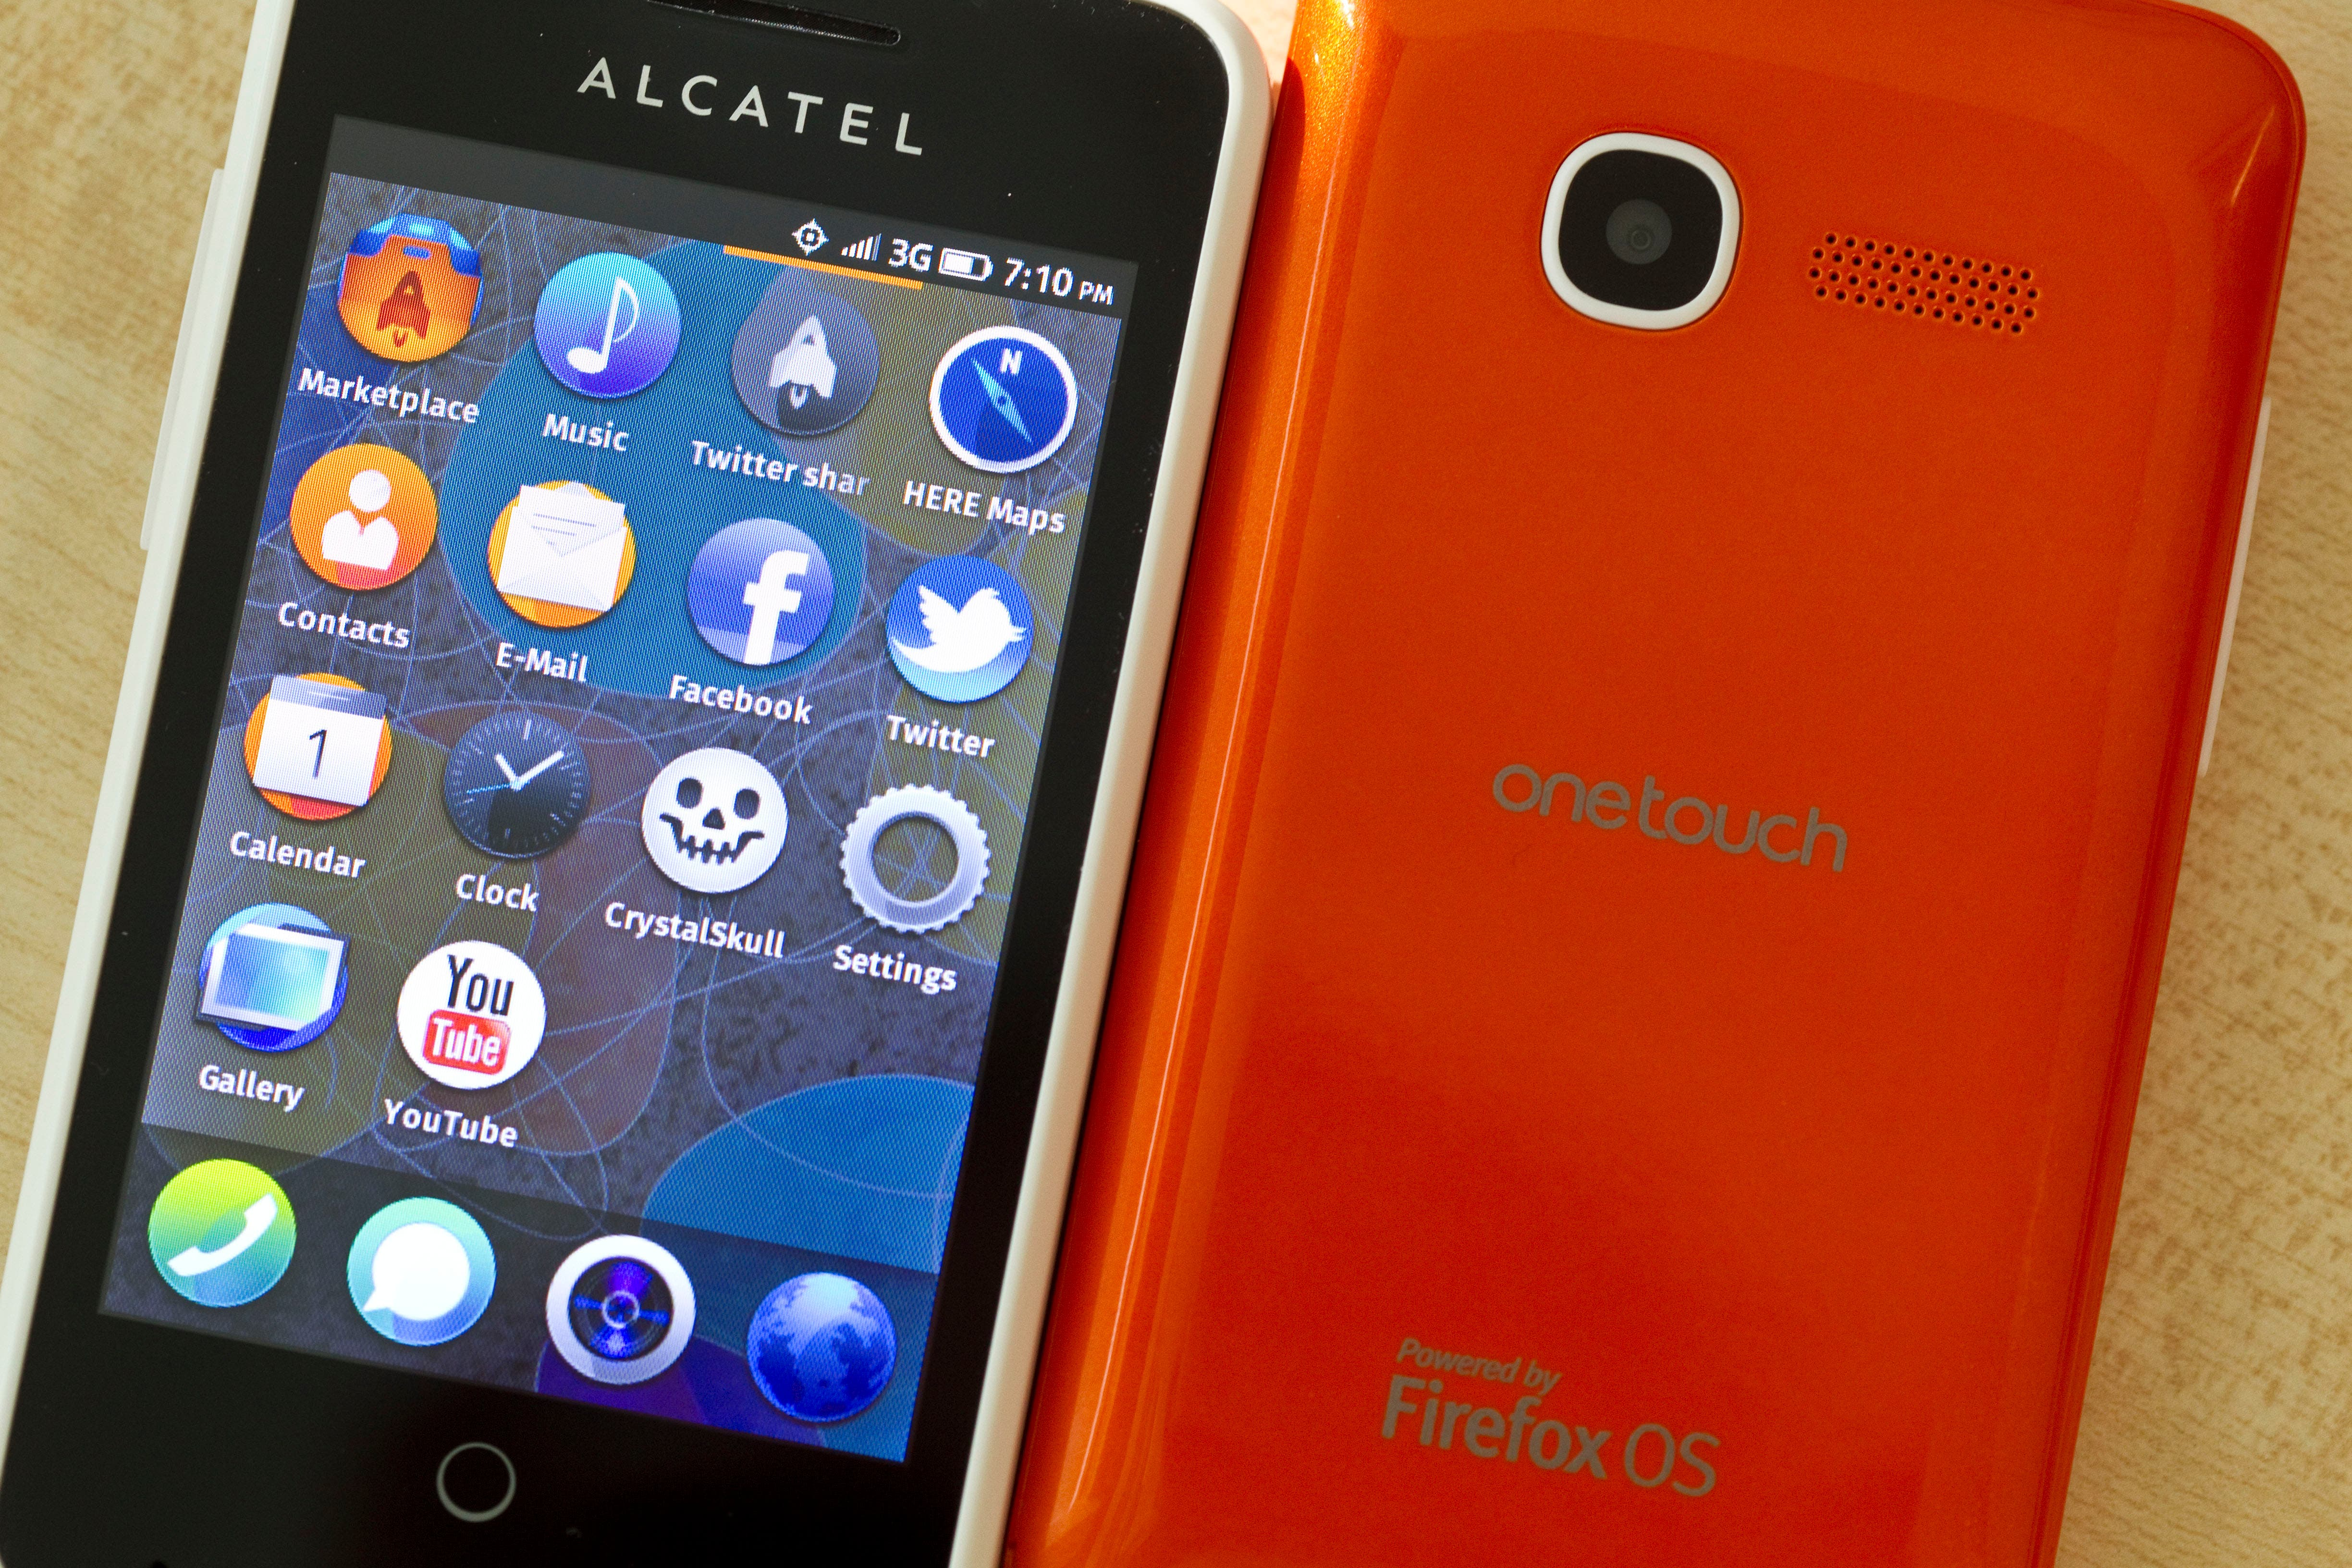 alcatel one touch fire 5